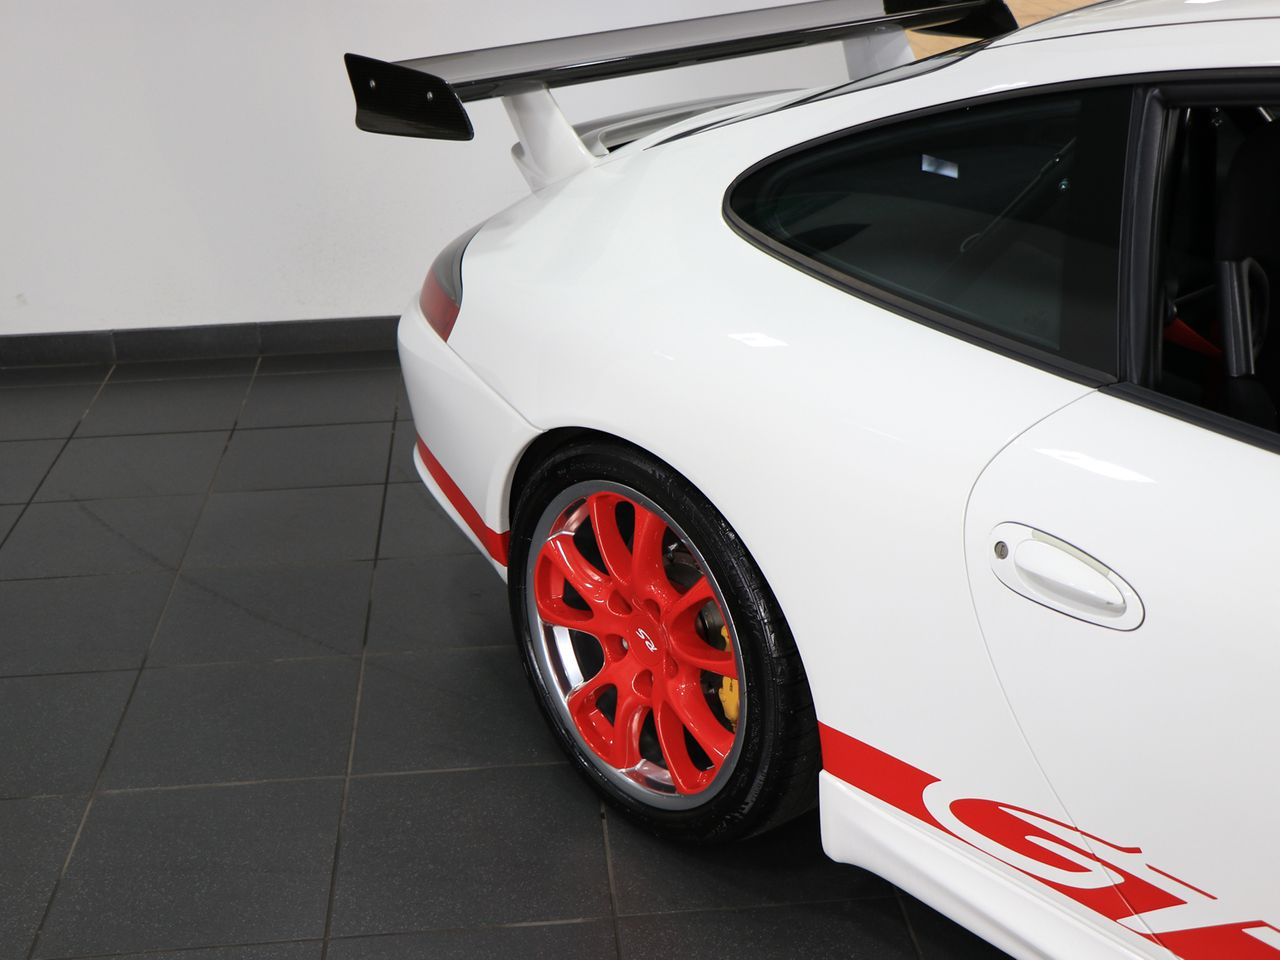 911 (996) GT3 RS image 29